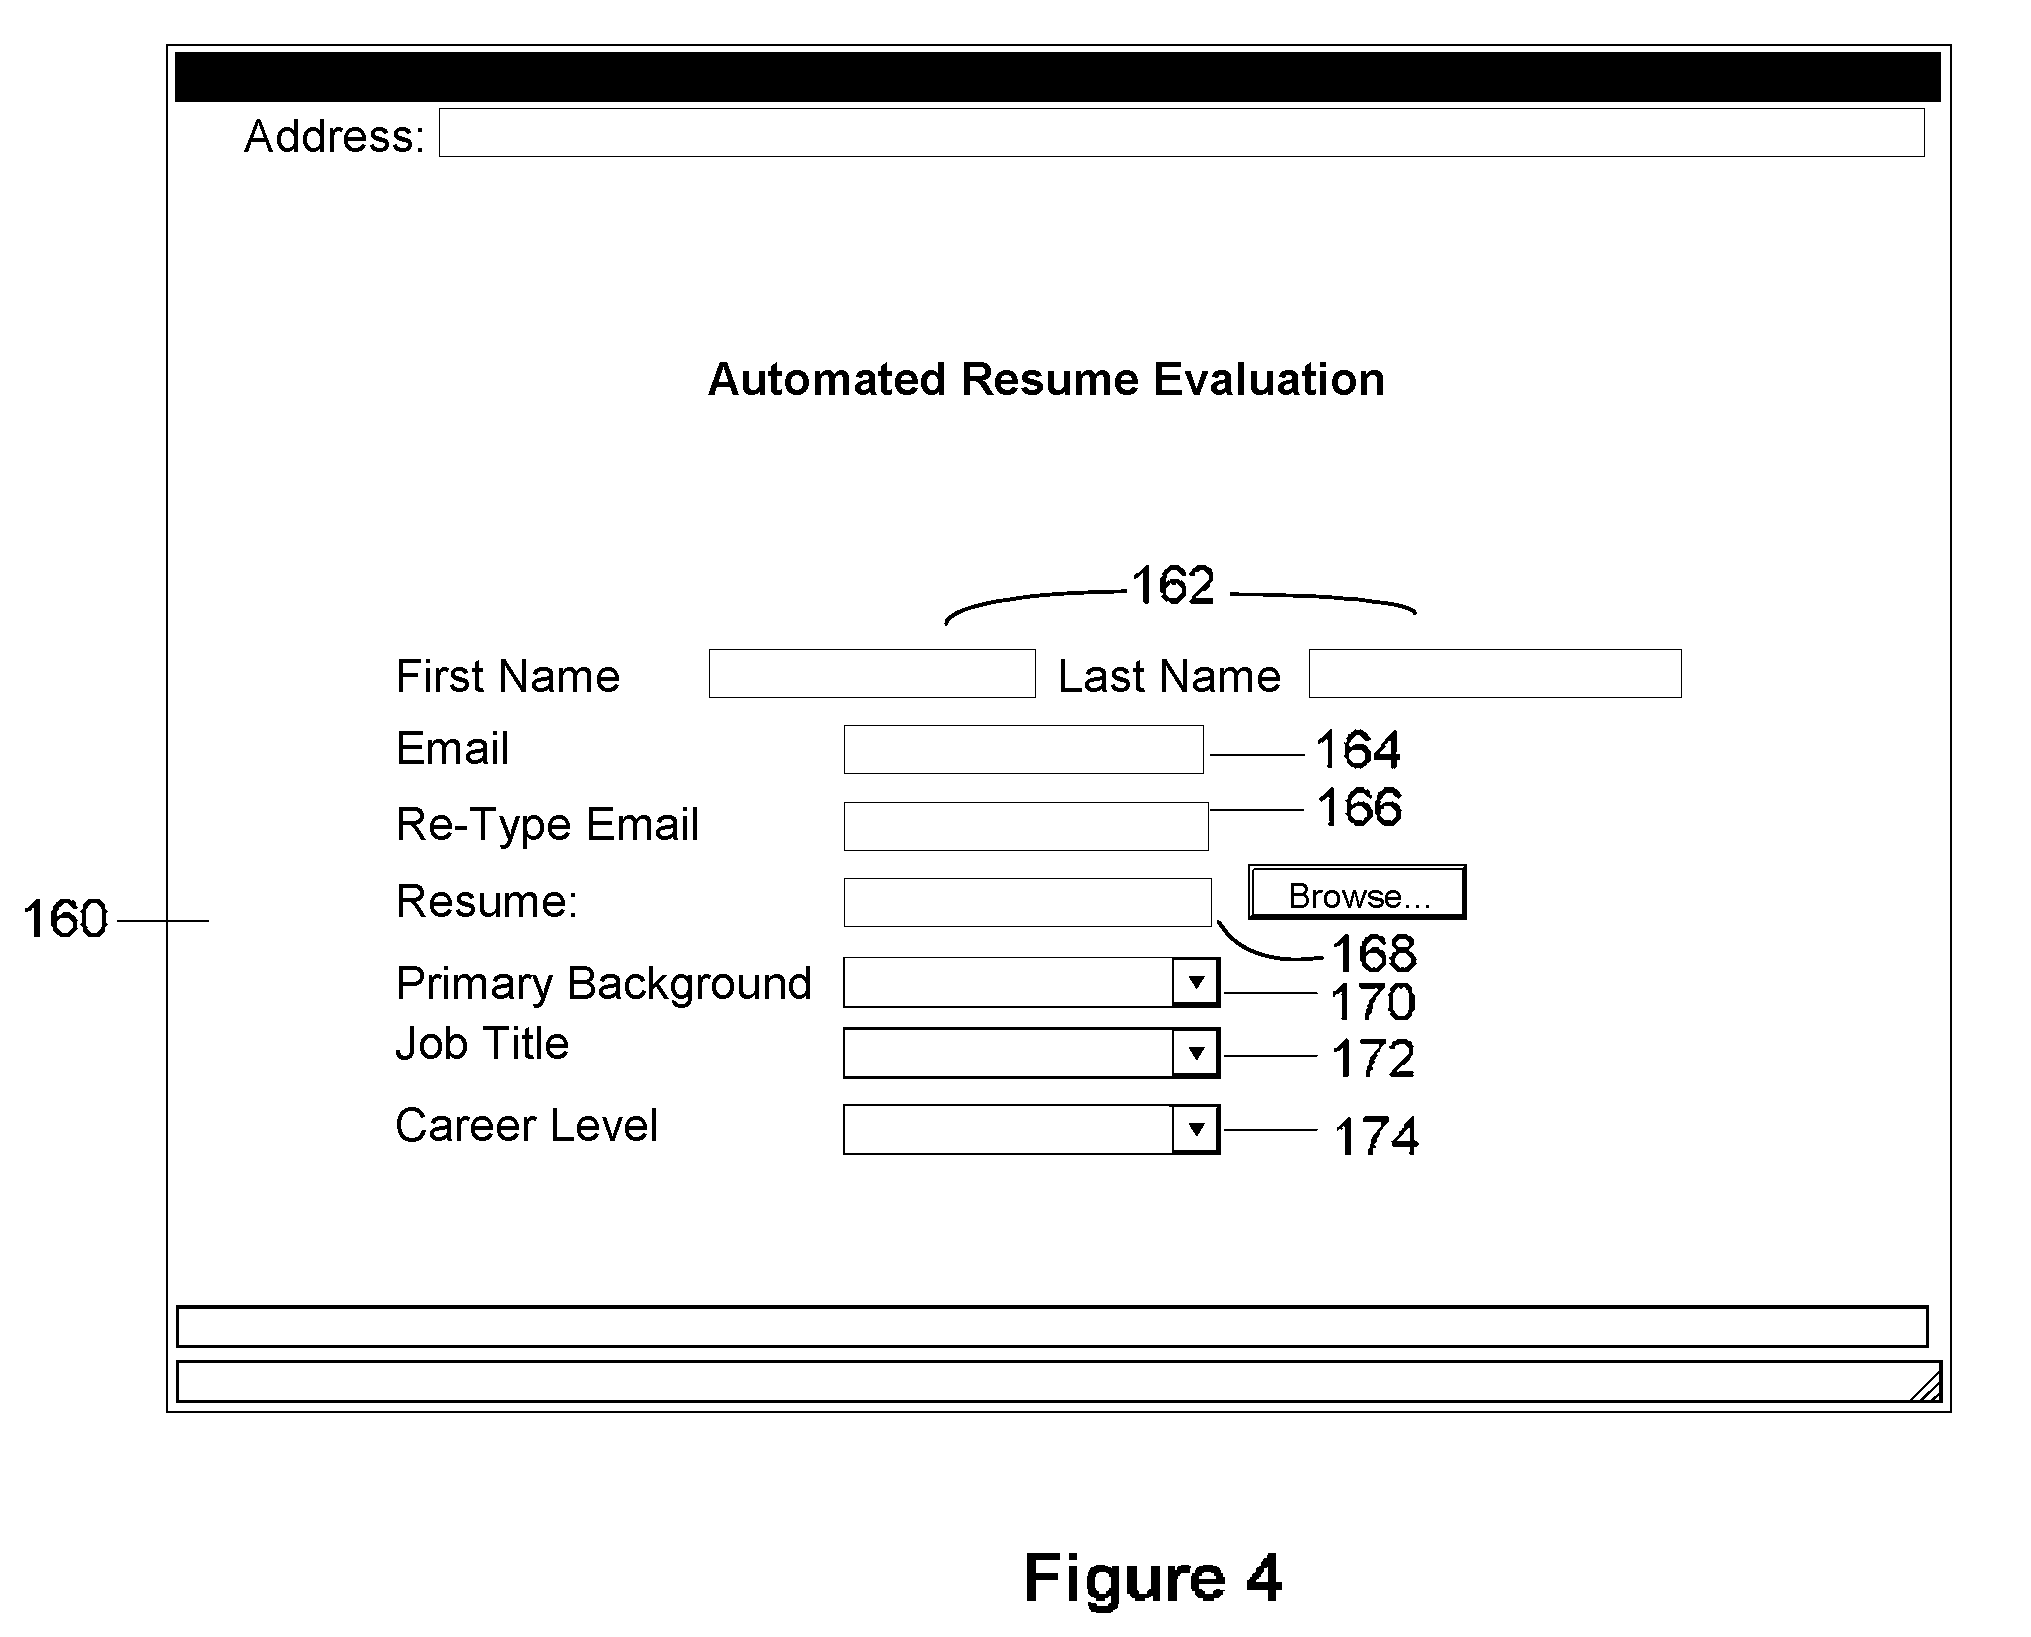 automated evaluation of grades system Manual vs automated grading system read/download free essays on computerized grading system chapter 1 for students the study of the enrollment process by computerizing the manual base grading system automated grading system for evaluation of superficial.